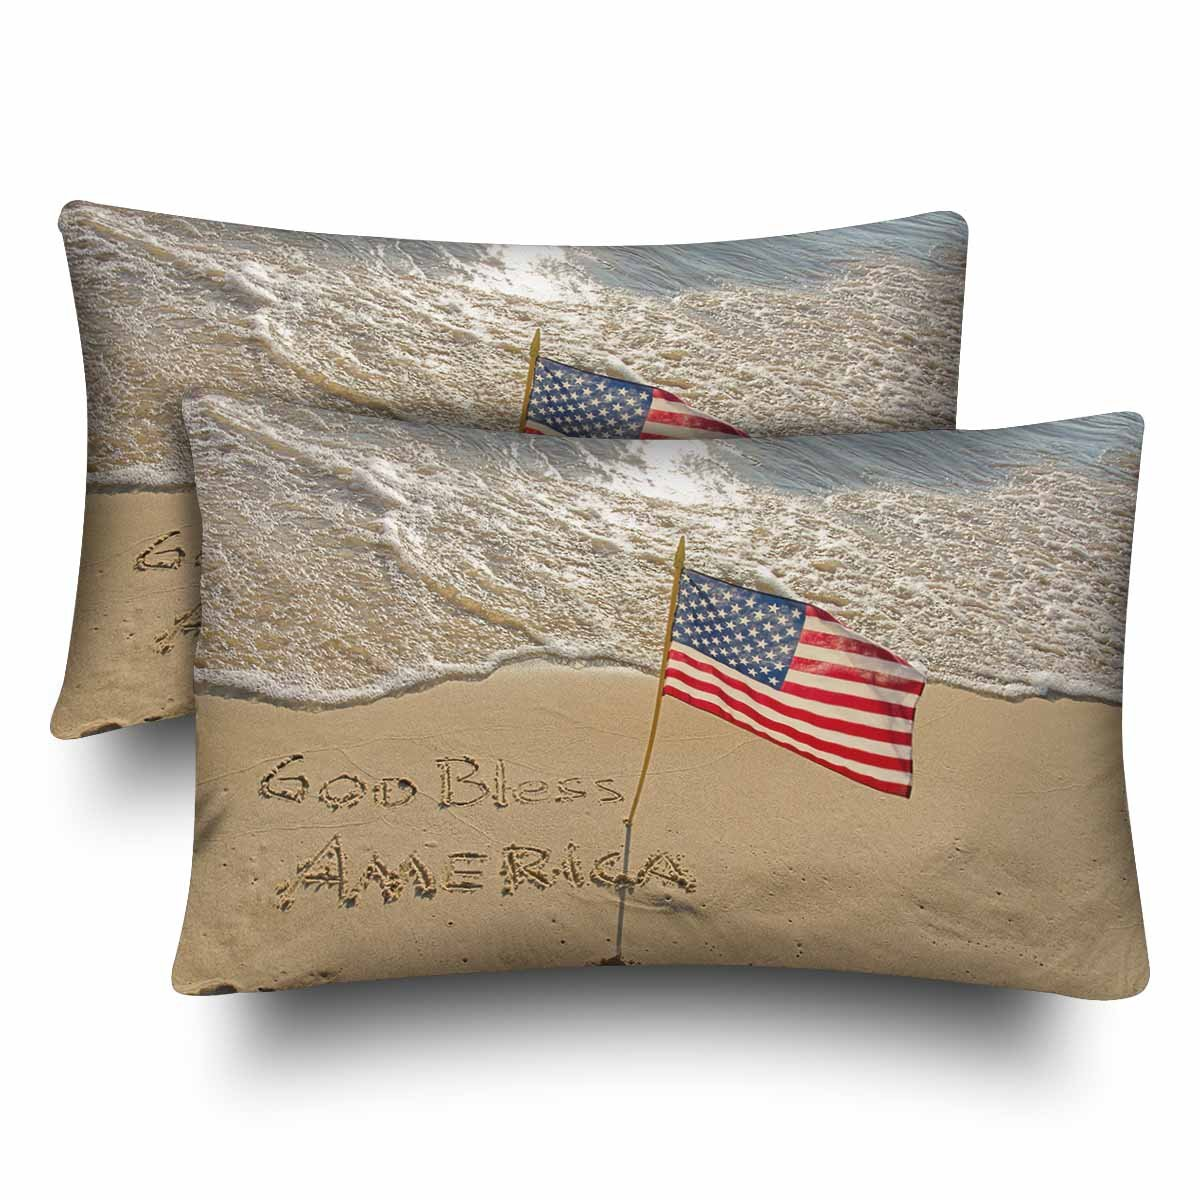 InterestPrint God Bless America Beach Sand with American Flag Pillow Cases Pillowcase Standard Size 20x30 Set of 2, 4th of July Independence Day Rectangle Pillow Covers for Home Bedding Decorative